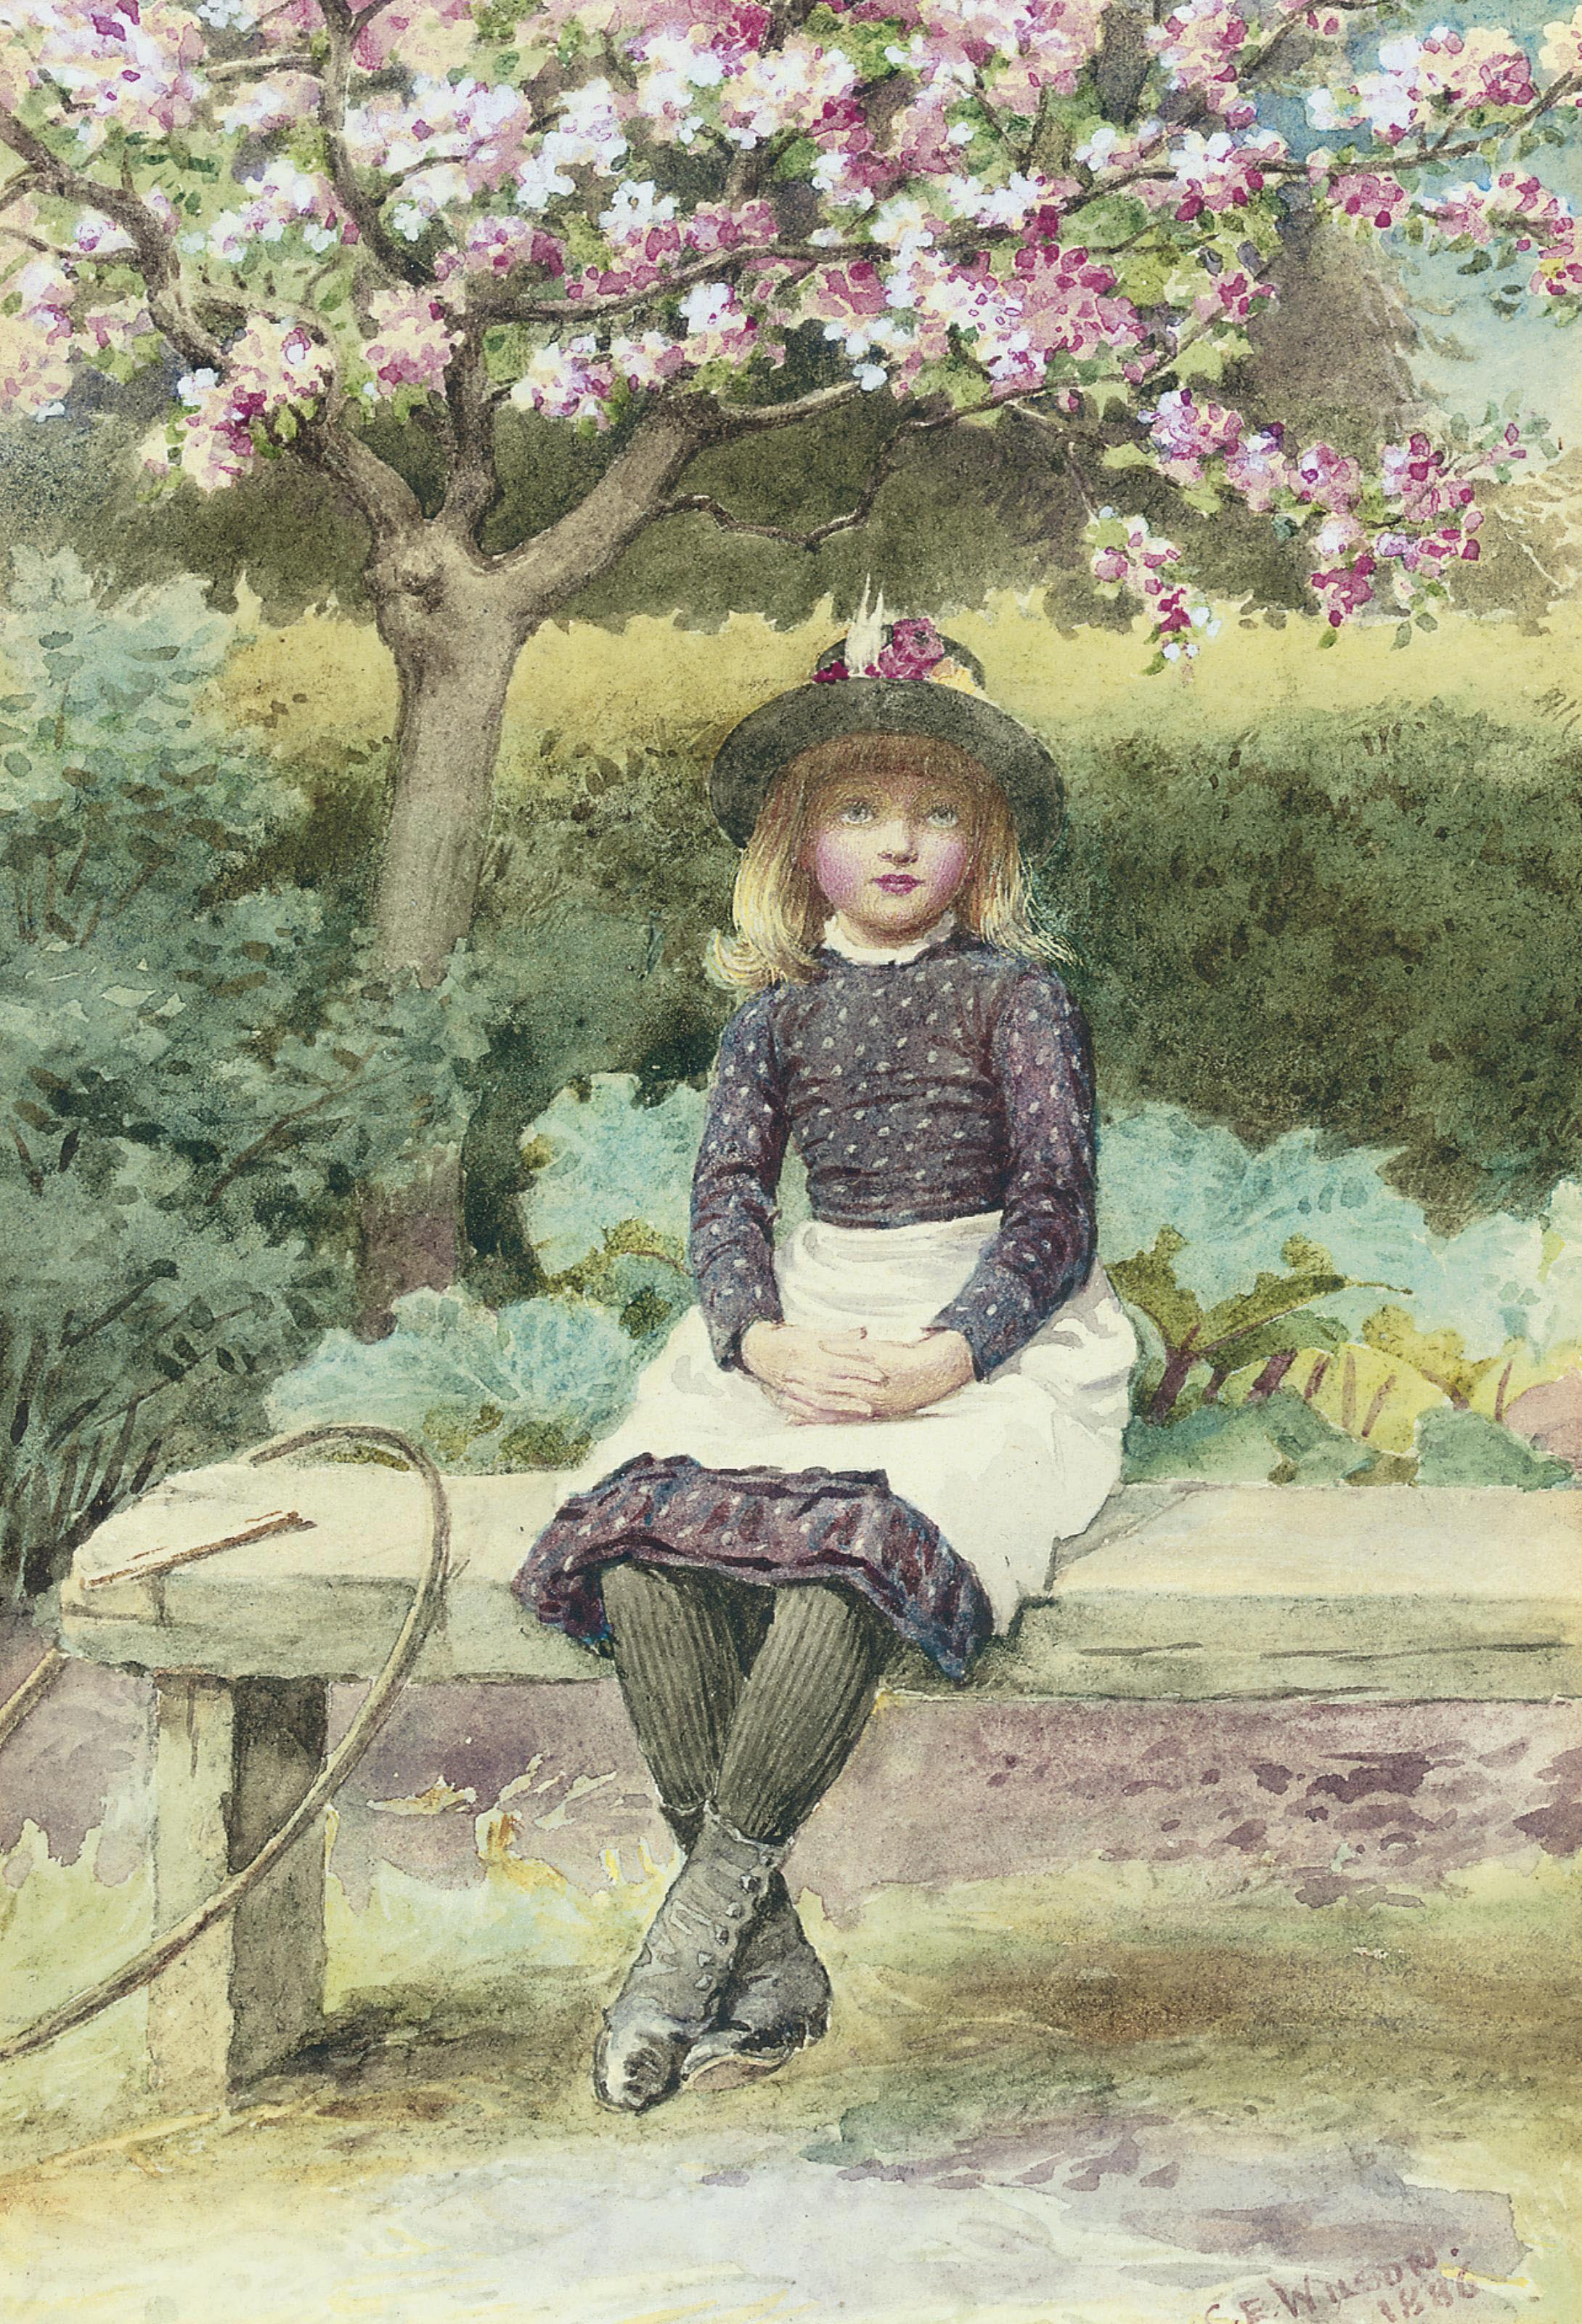 A young girl with a hoop and stick, seated on a bench, below an apple tree in blossom